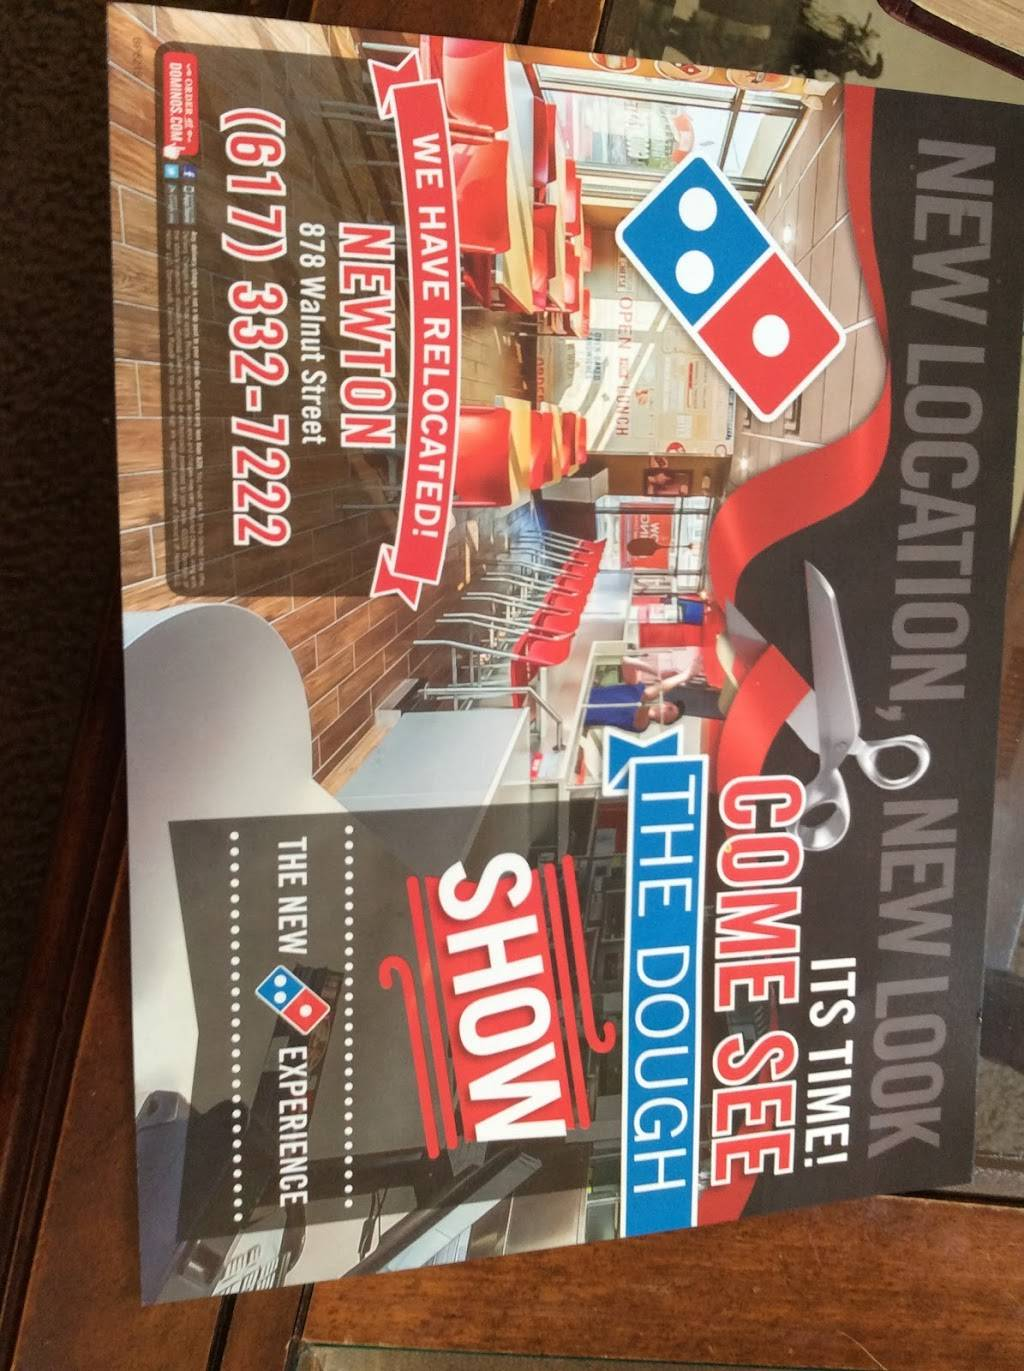 Dominos Pizza | meal delivery | 880 Walnut St, Newton, MA 02459, USA | 6173327222 OR +1 617-332-7222